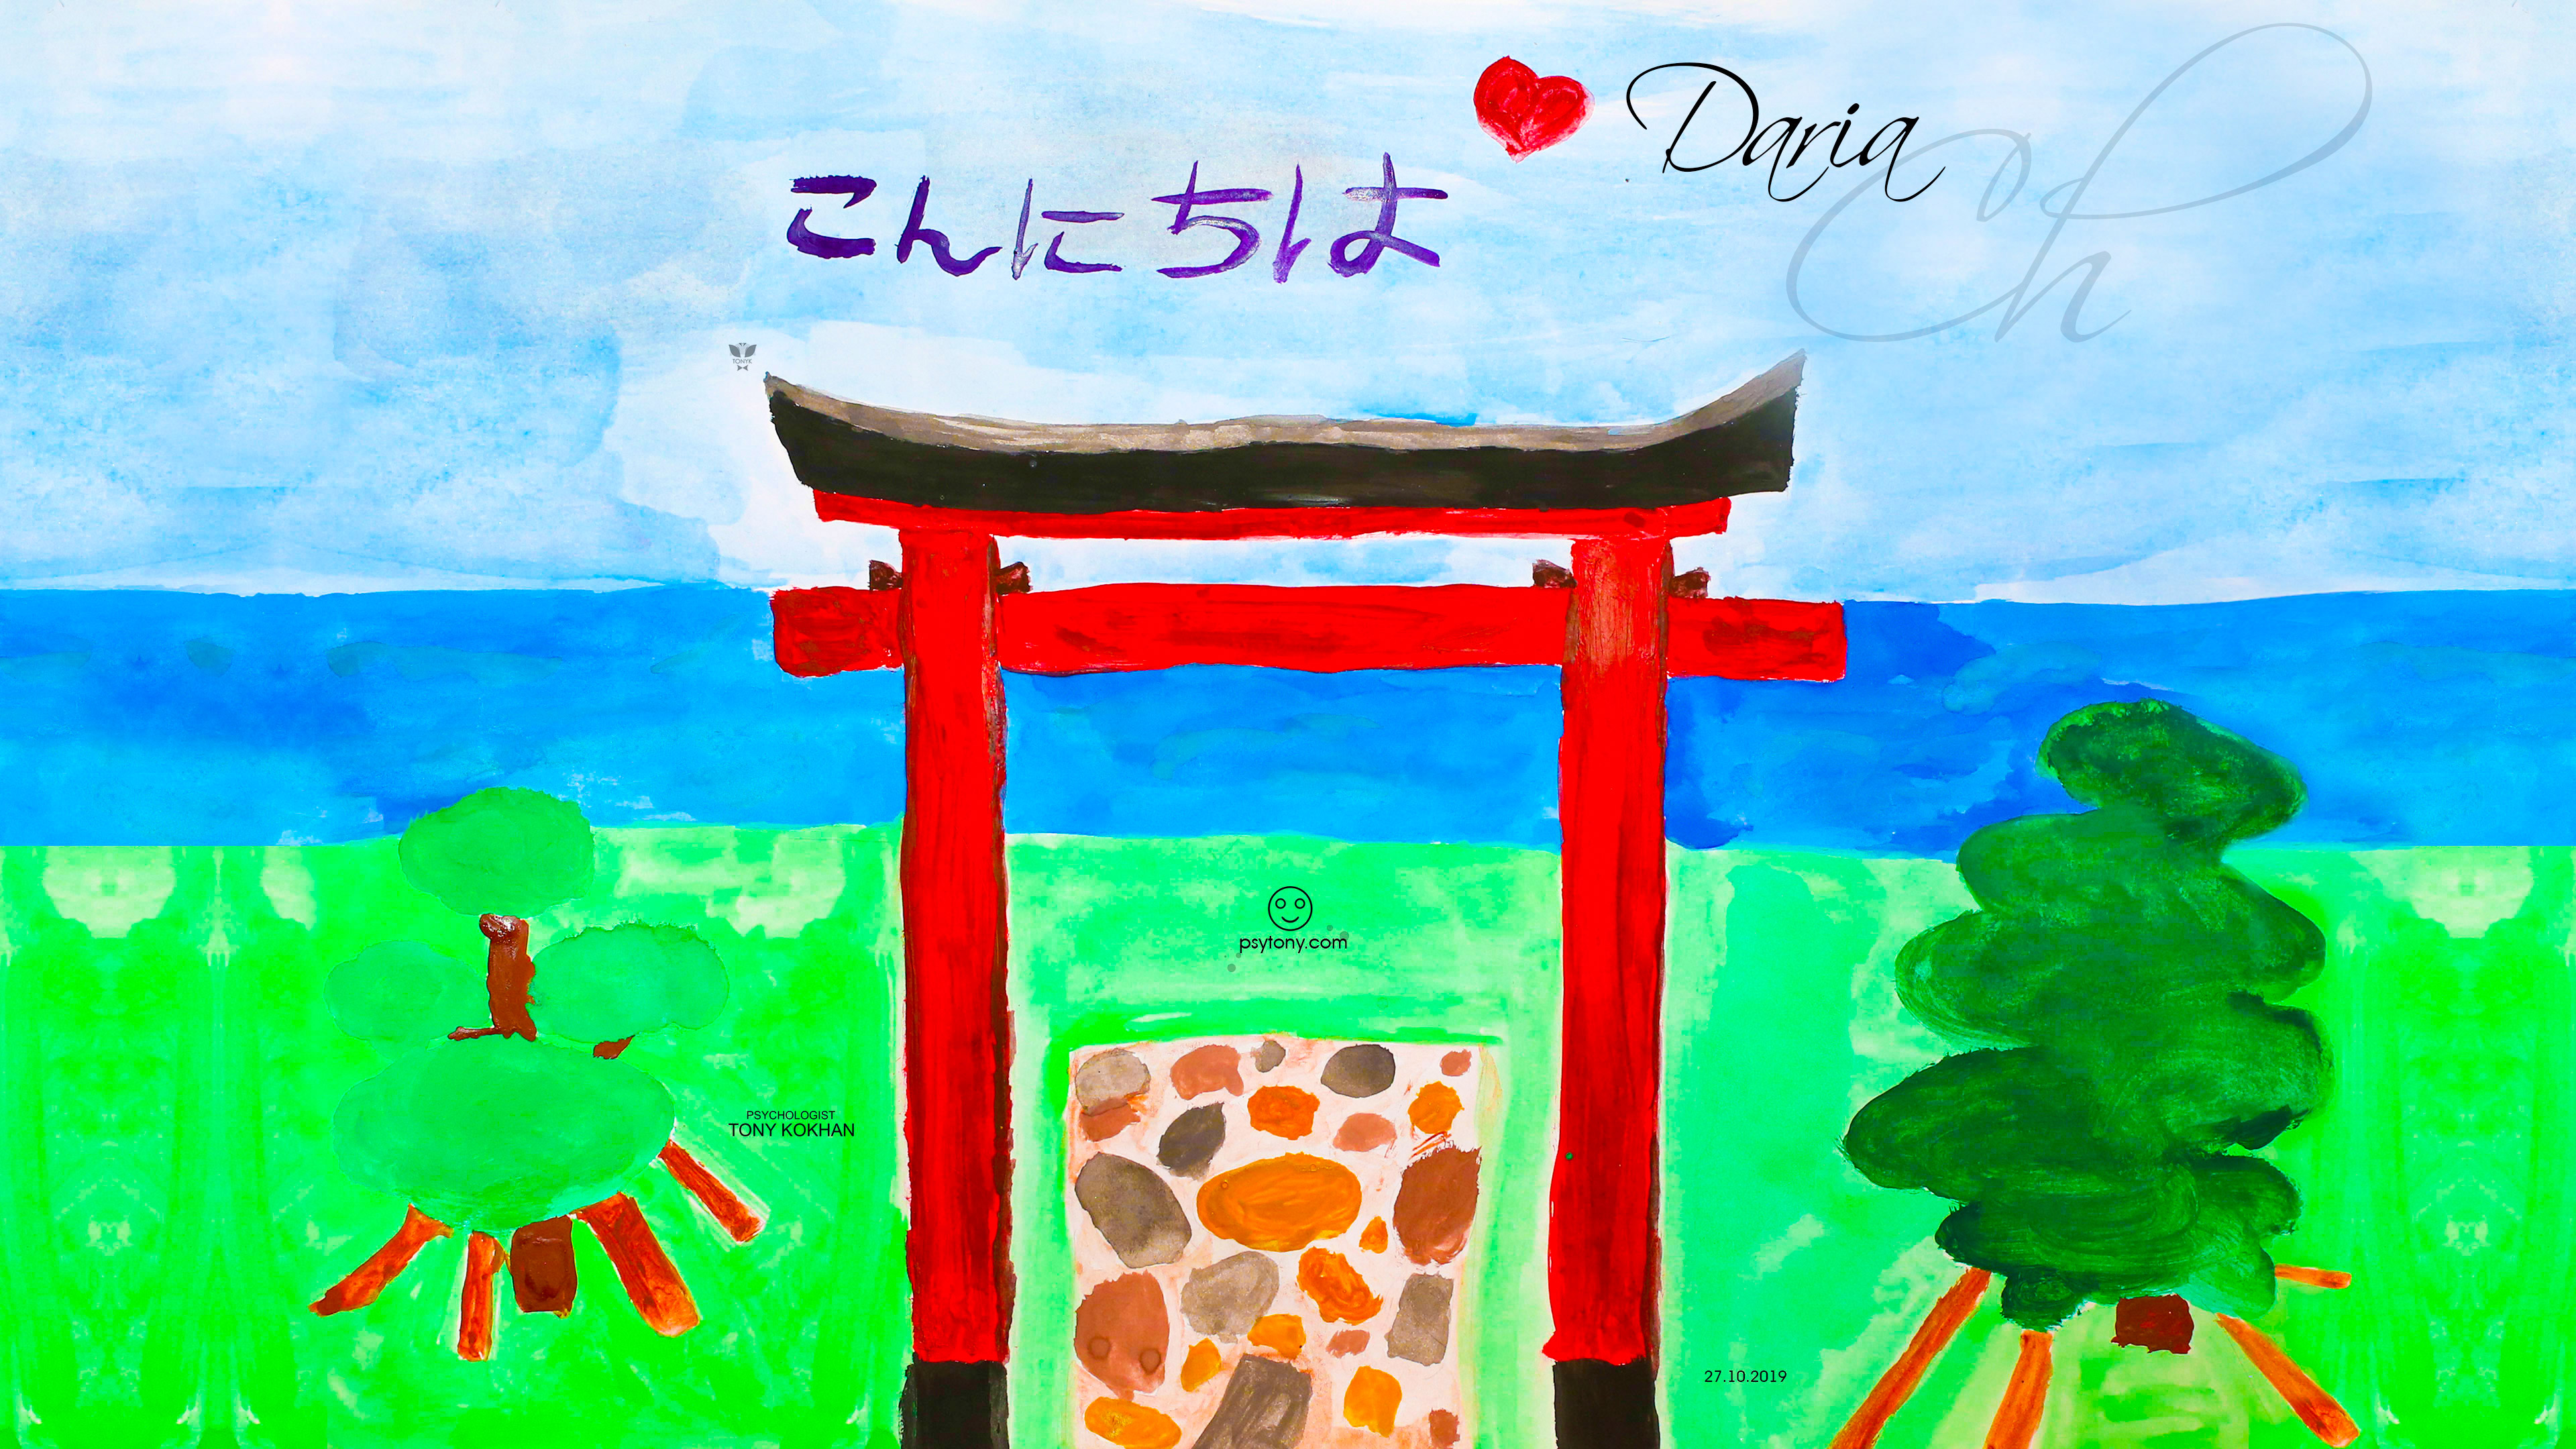 Daria-Soul-Girl-Sacred-Gate-of-Japan-Torii-Love-Hello-Souls-Picture-Drawing-with-Gouache-2019-Multicolors-4K-Wallpapers-by-Psychologist-Tony-Kokhan-www.psytony.com-image